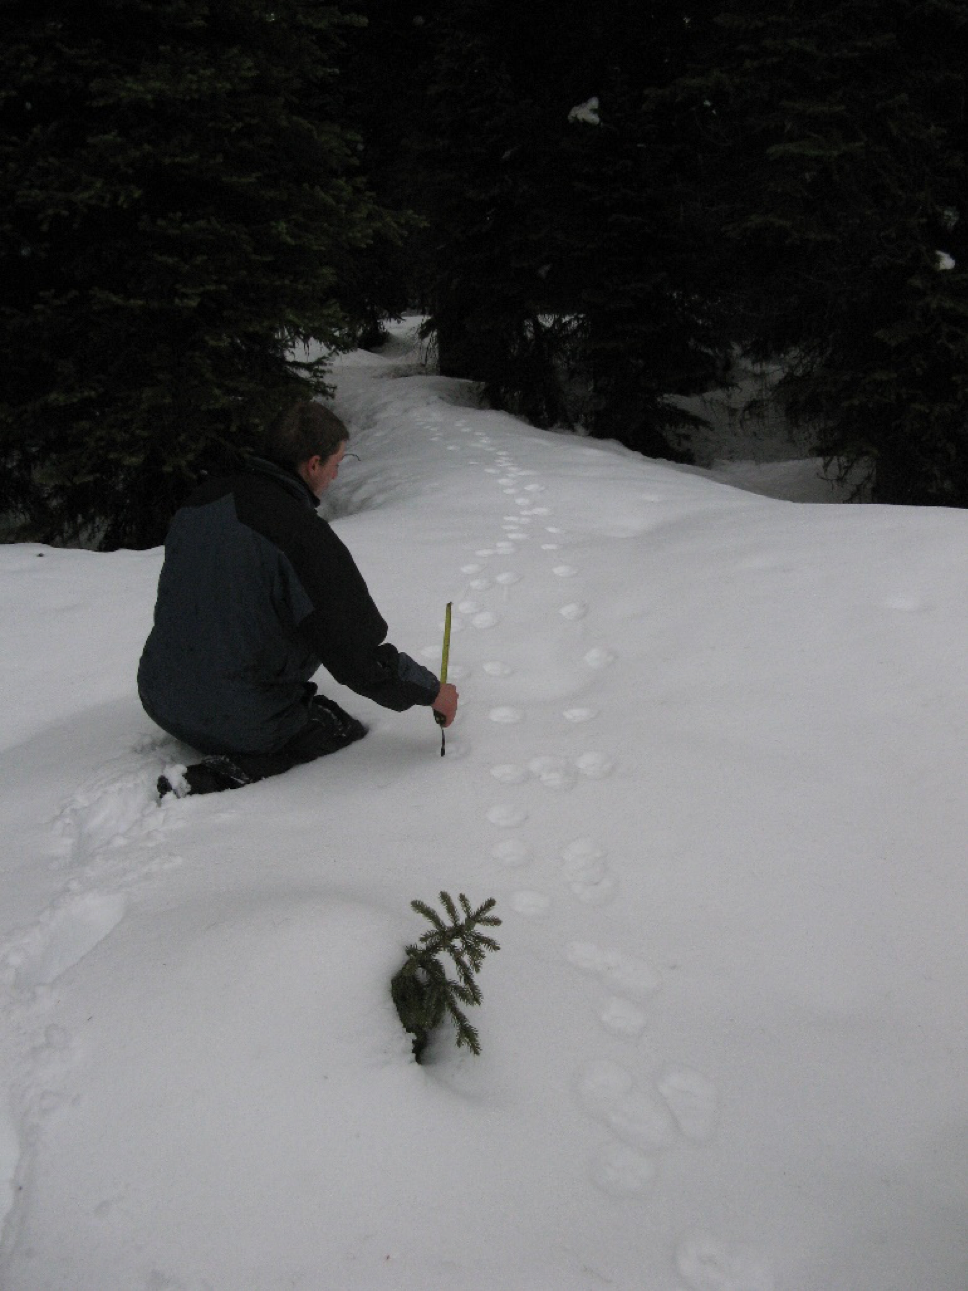 Mike Mayernik measuring tracks from a family of 3 lynx.